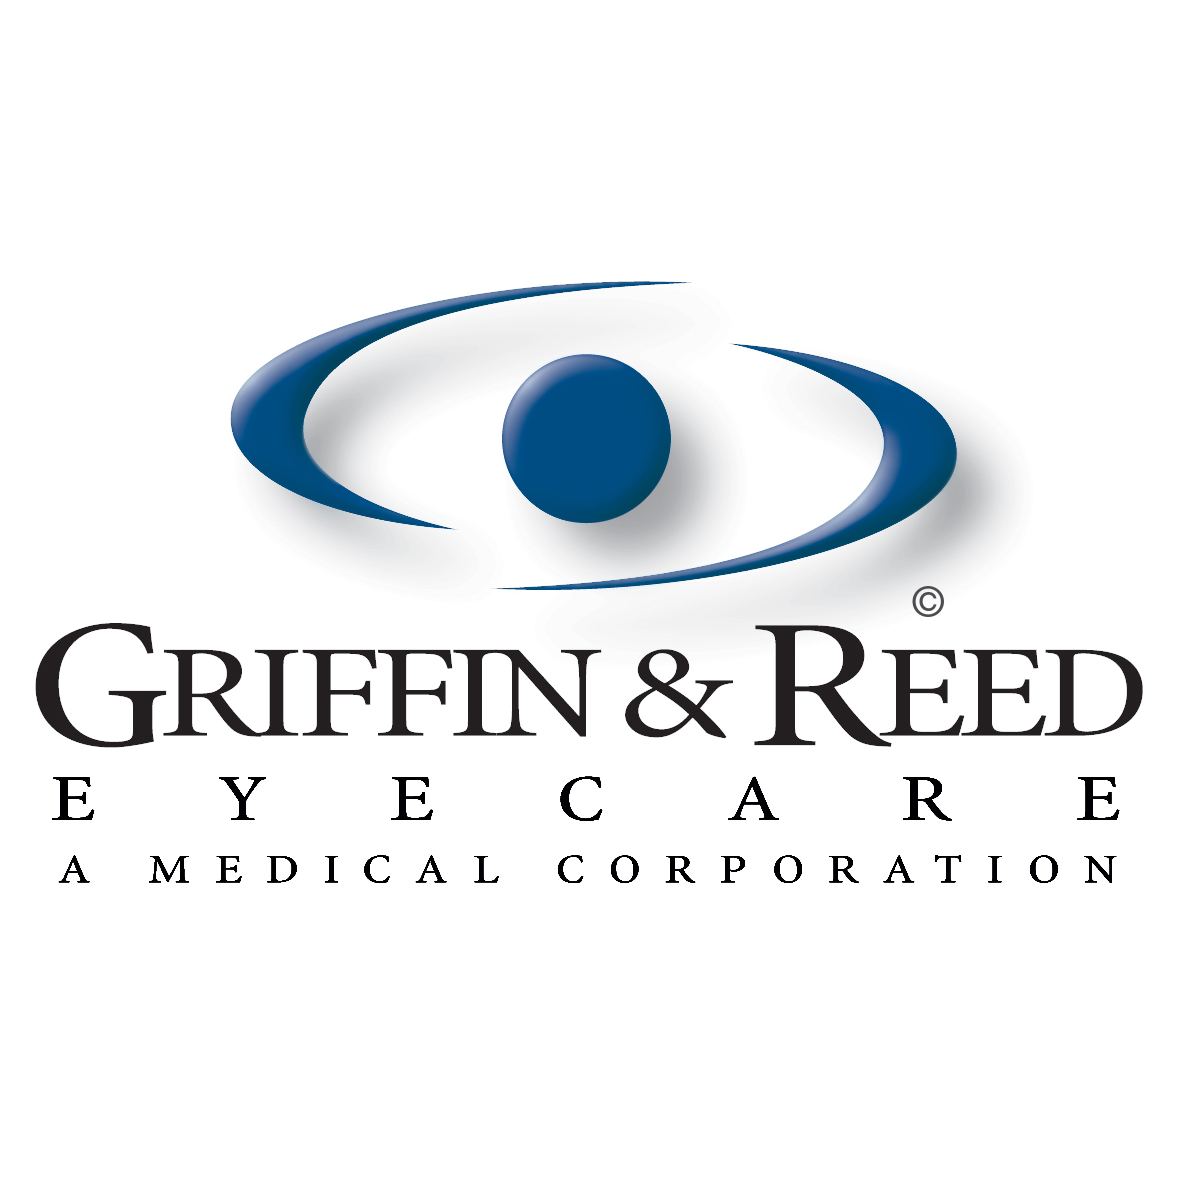 Griffin & Reed Eye Care